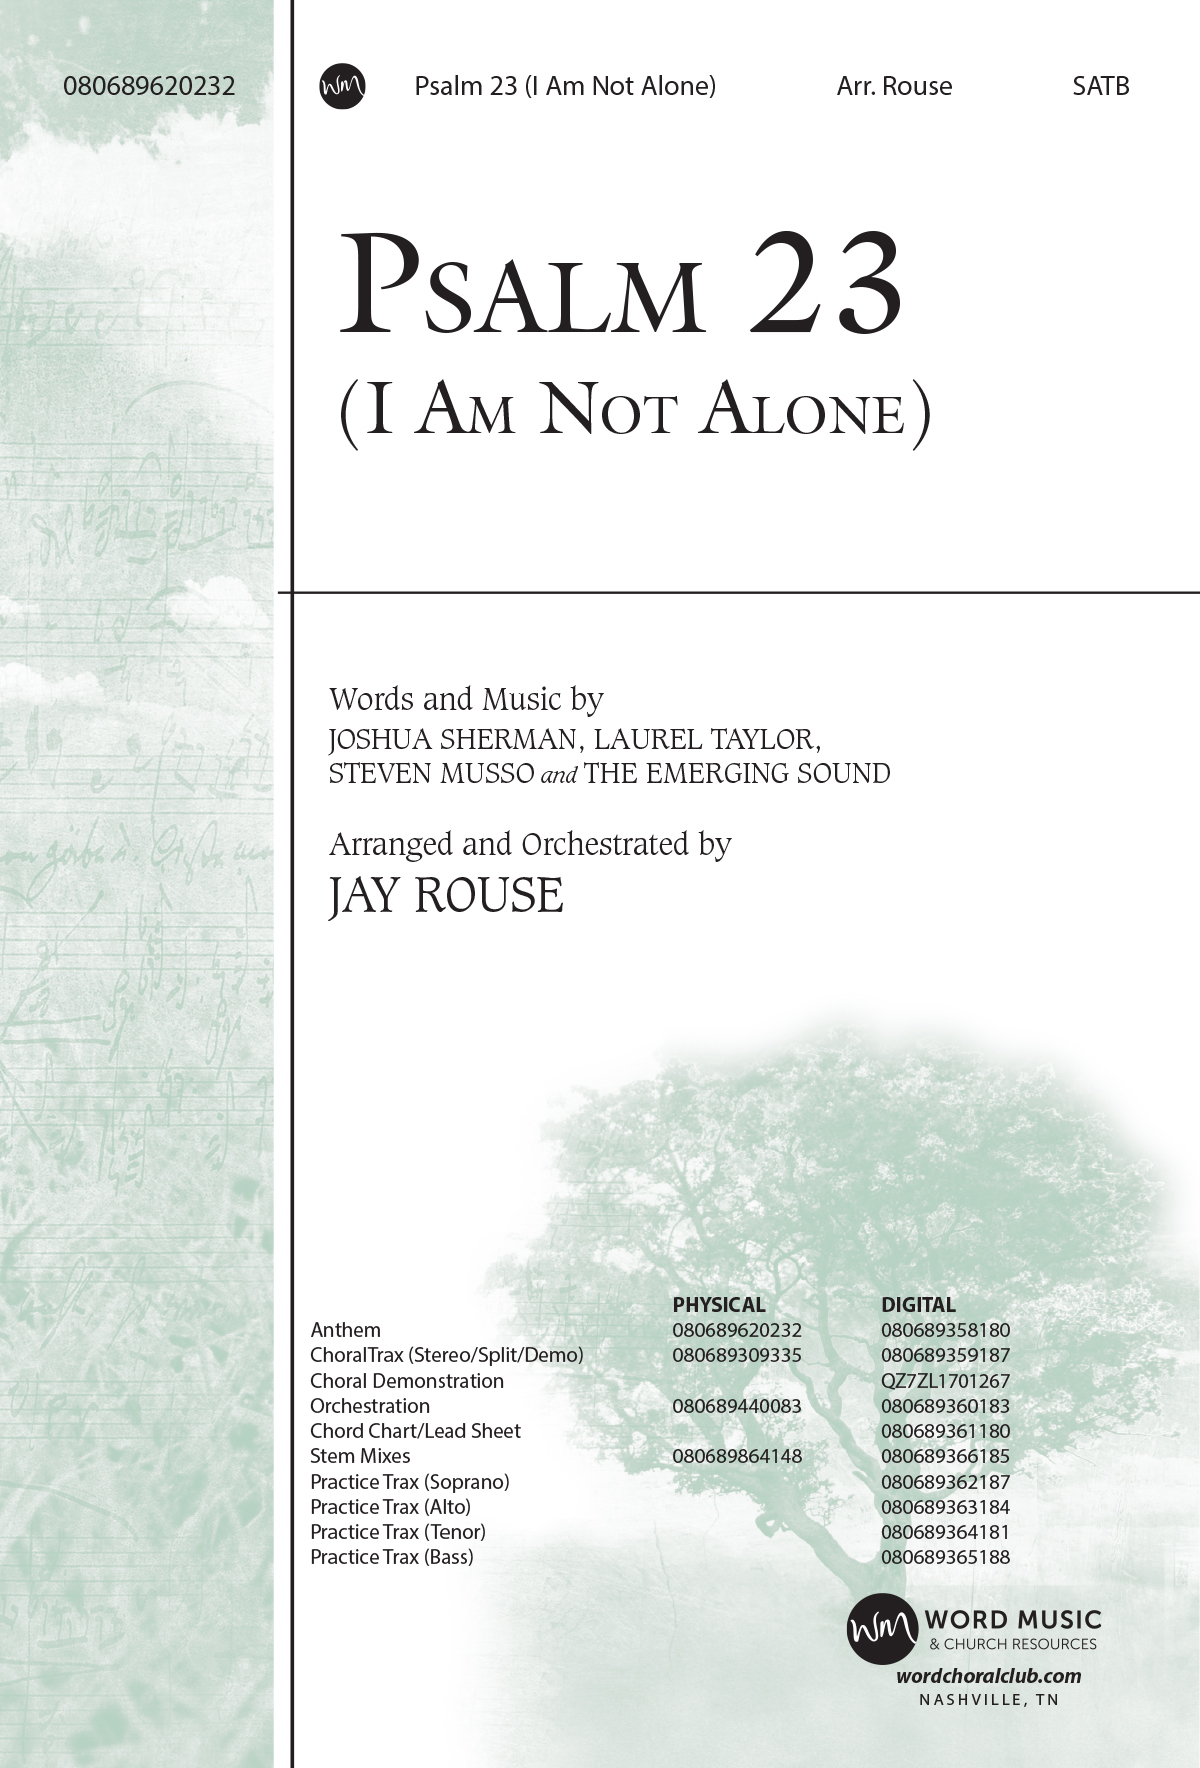 Psalm 23 (I Am Not Alone)